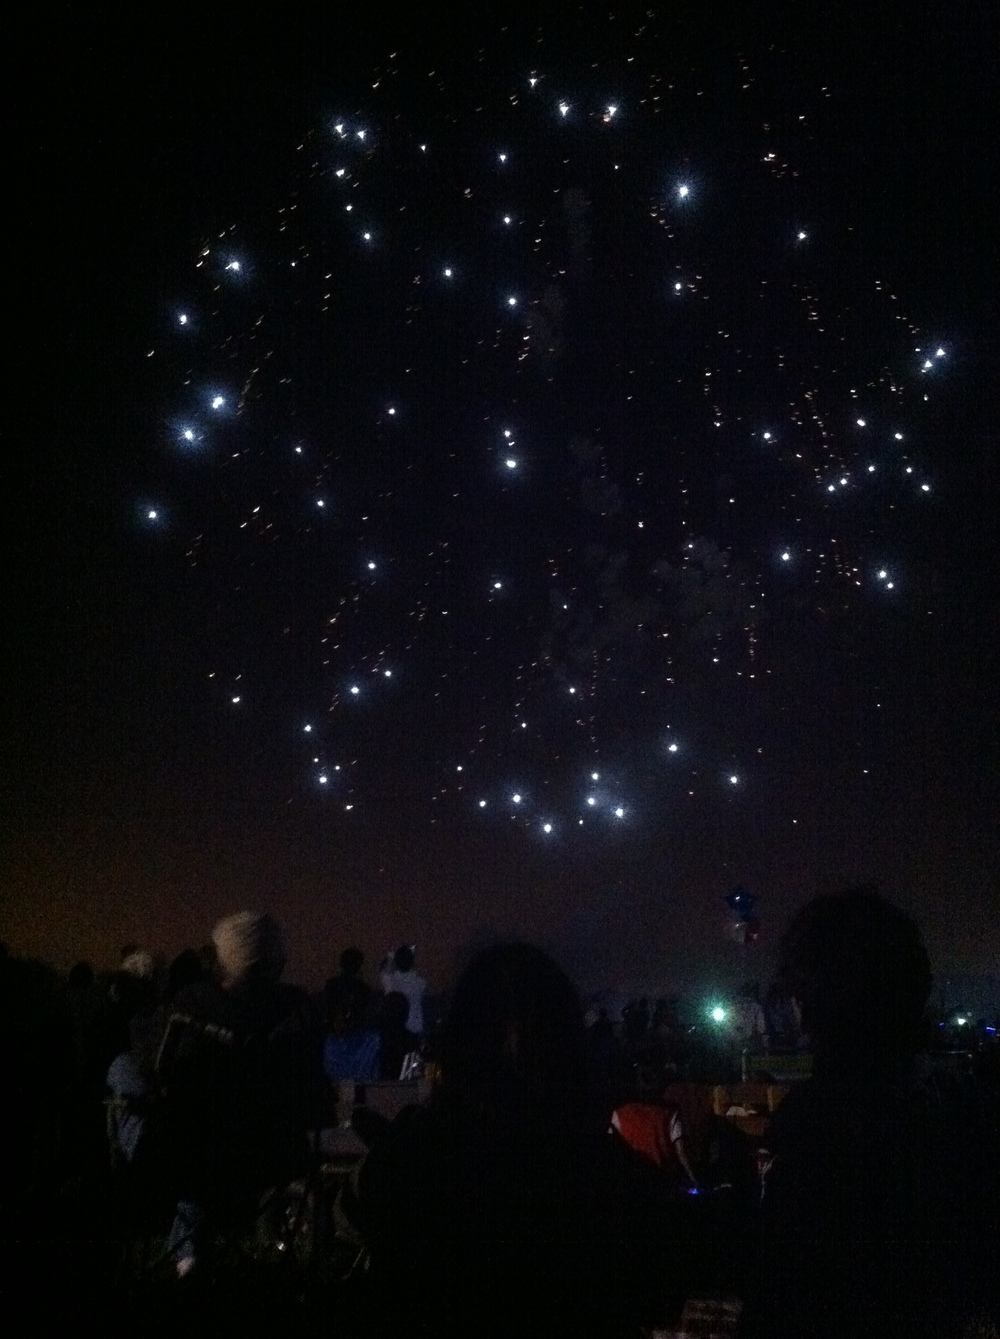 Taken with the iPhone. The sky looks so starry, even though they're actually fireworks!